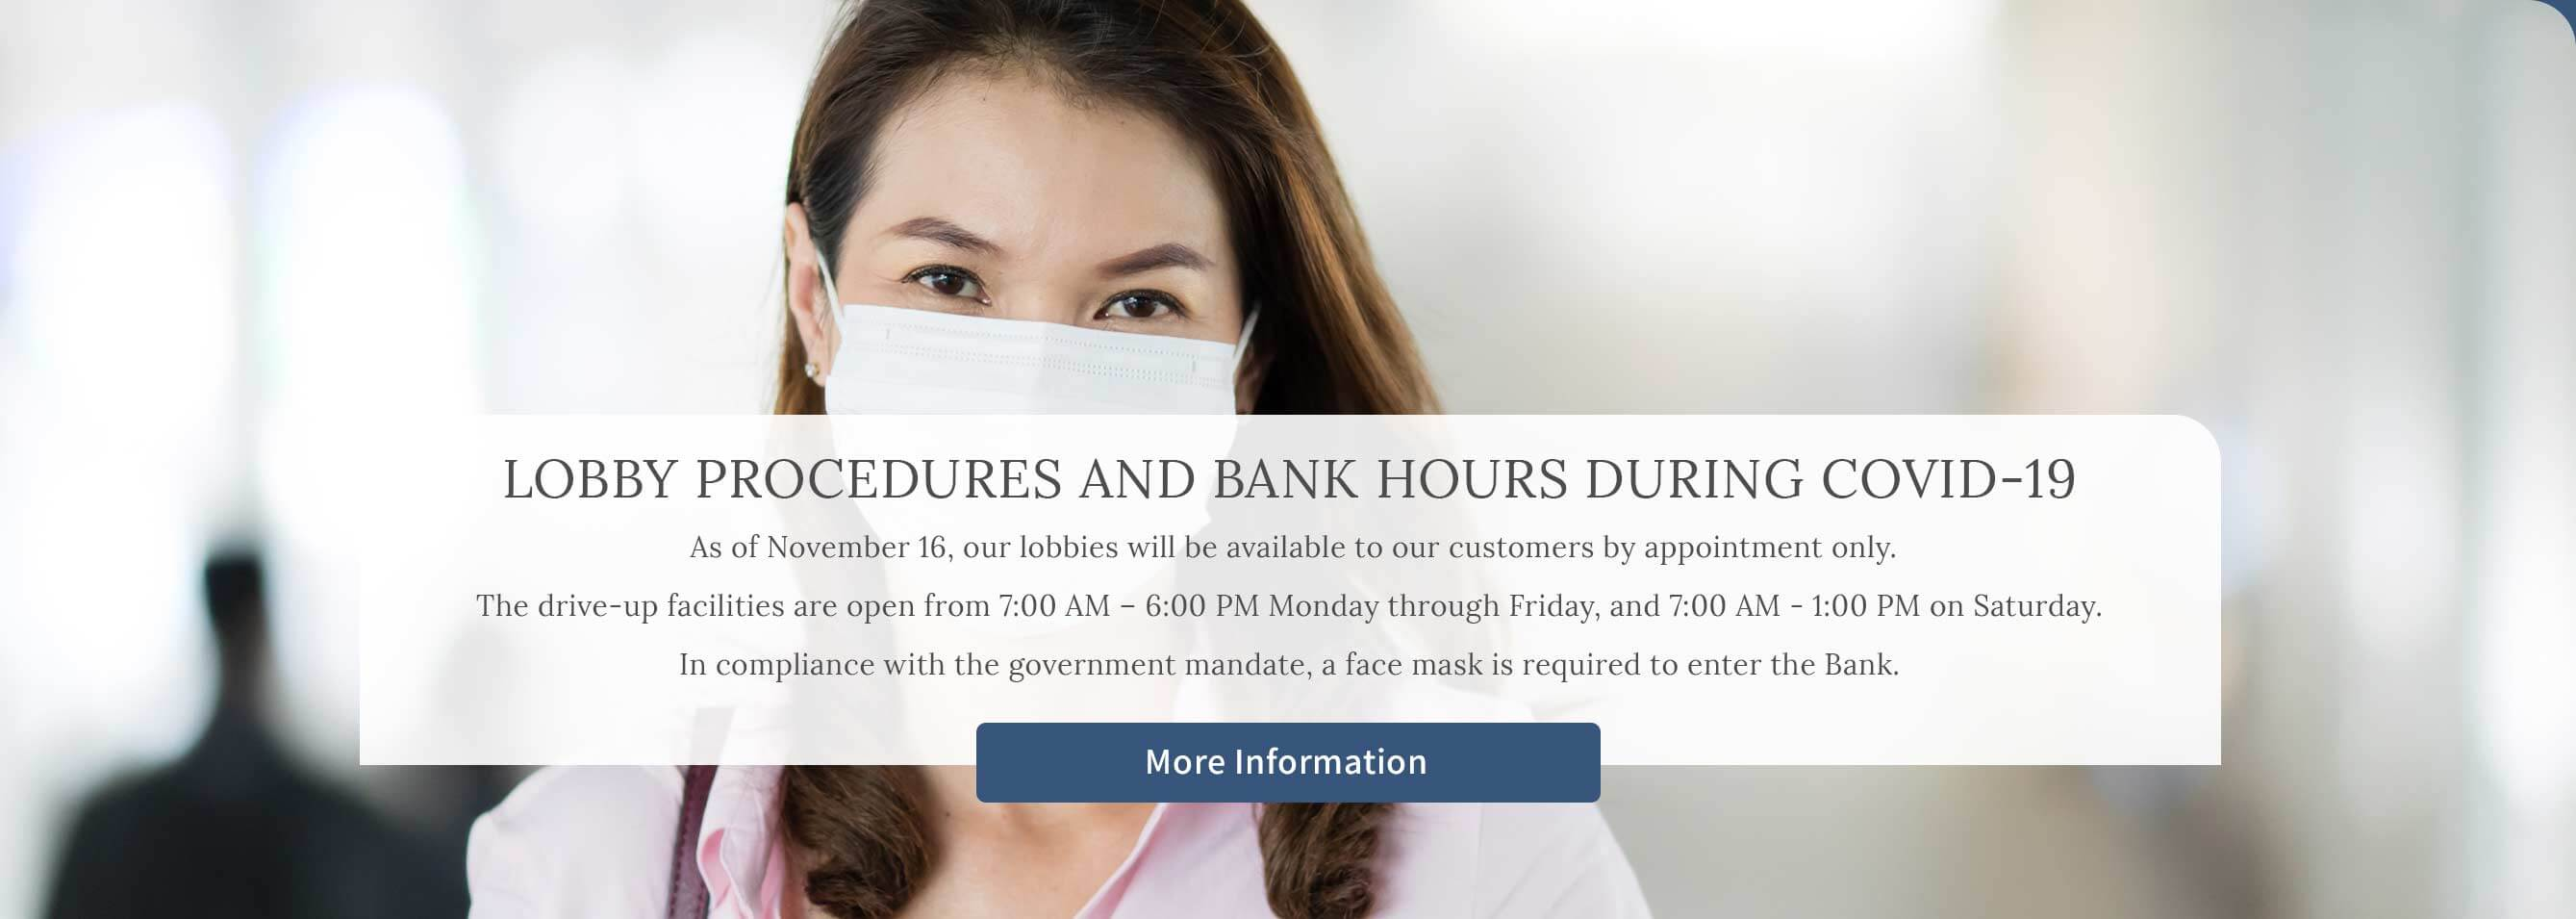 Lobby procedures and bank hours during Covid-19 As of November 16, our lobbies will be available to our customers by appointment only. The drive-up facilities are open from 7:00 am - 6:00 pm Monday through Friday, and 7:00 am - 1:00 pm on Saturday. In compliance with the government mandate, a face mask is required to enter the Bank. More information.